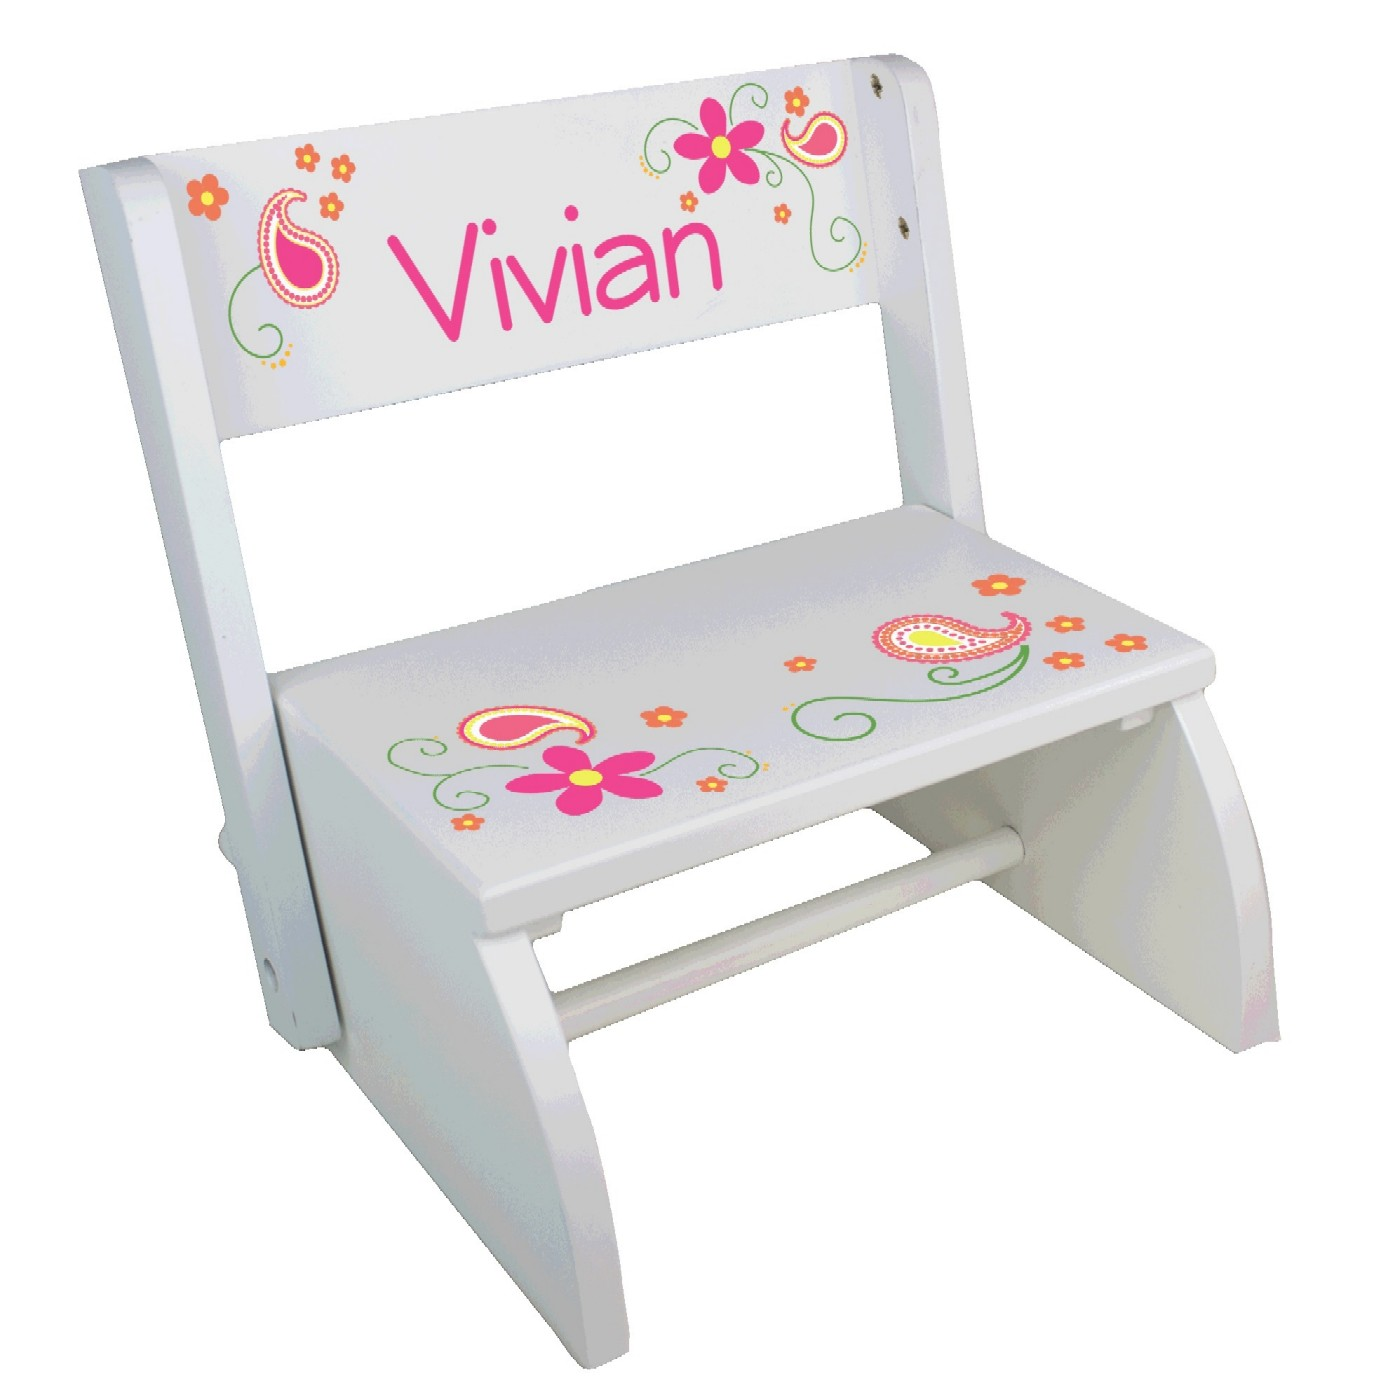 Fabulous Personalized Childrens Convertible Stools Over 70 Designs Machost Co Dining Chair Design Ideas Machostcouk